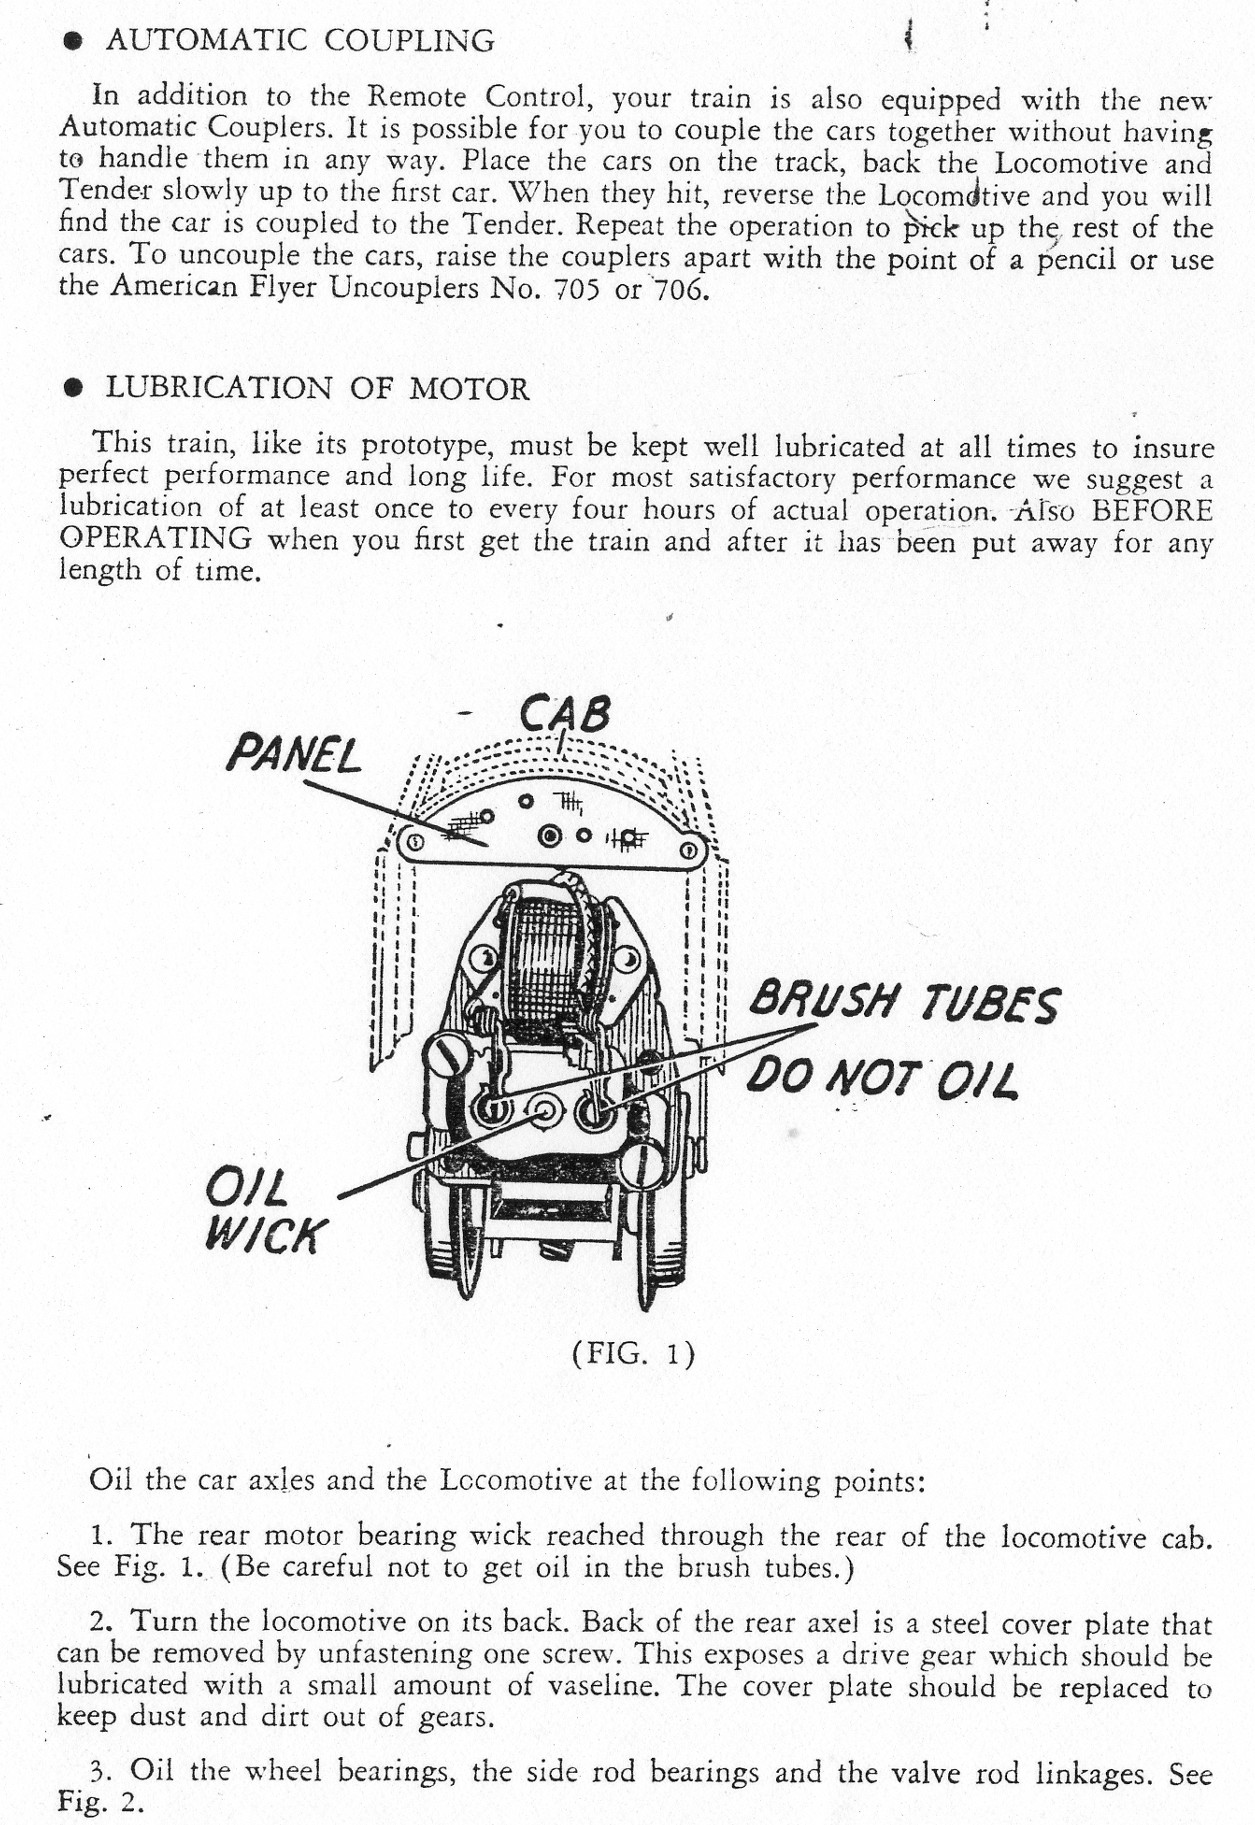 Operating Instructions For Worm Drive Locomotives- Page 2